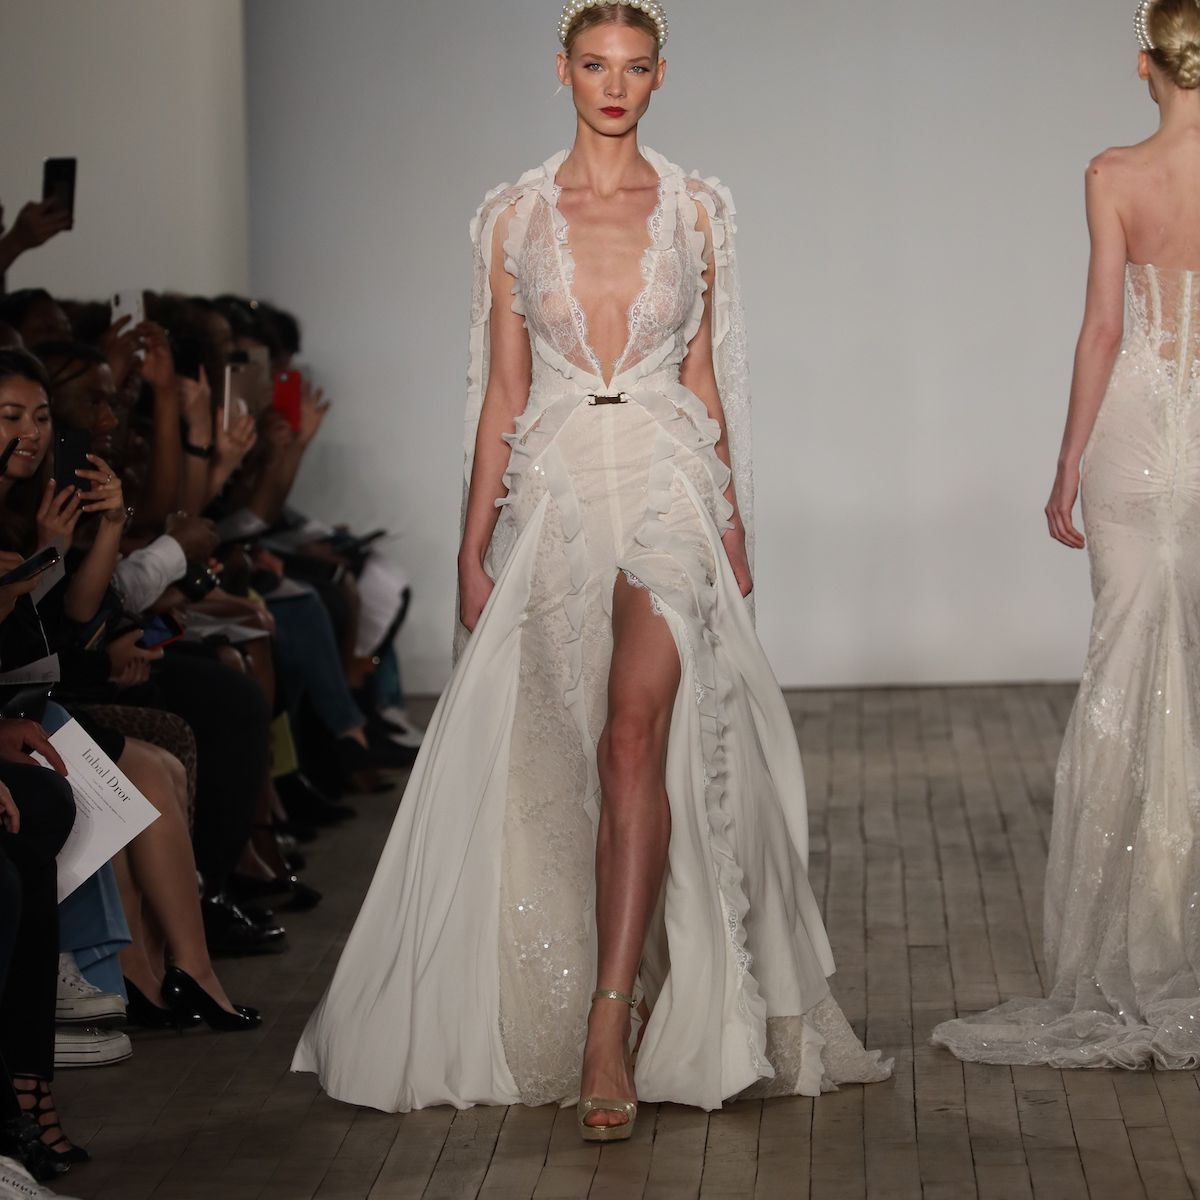 Model in beaded halter wedding dress with cape